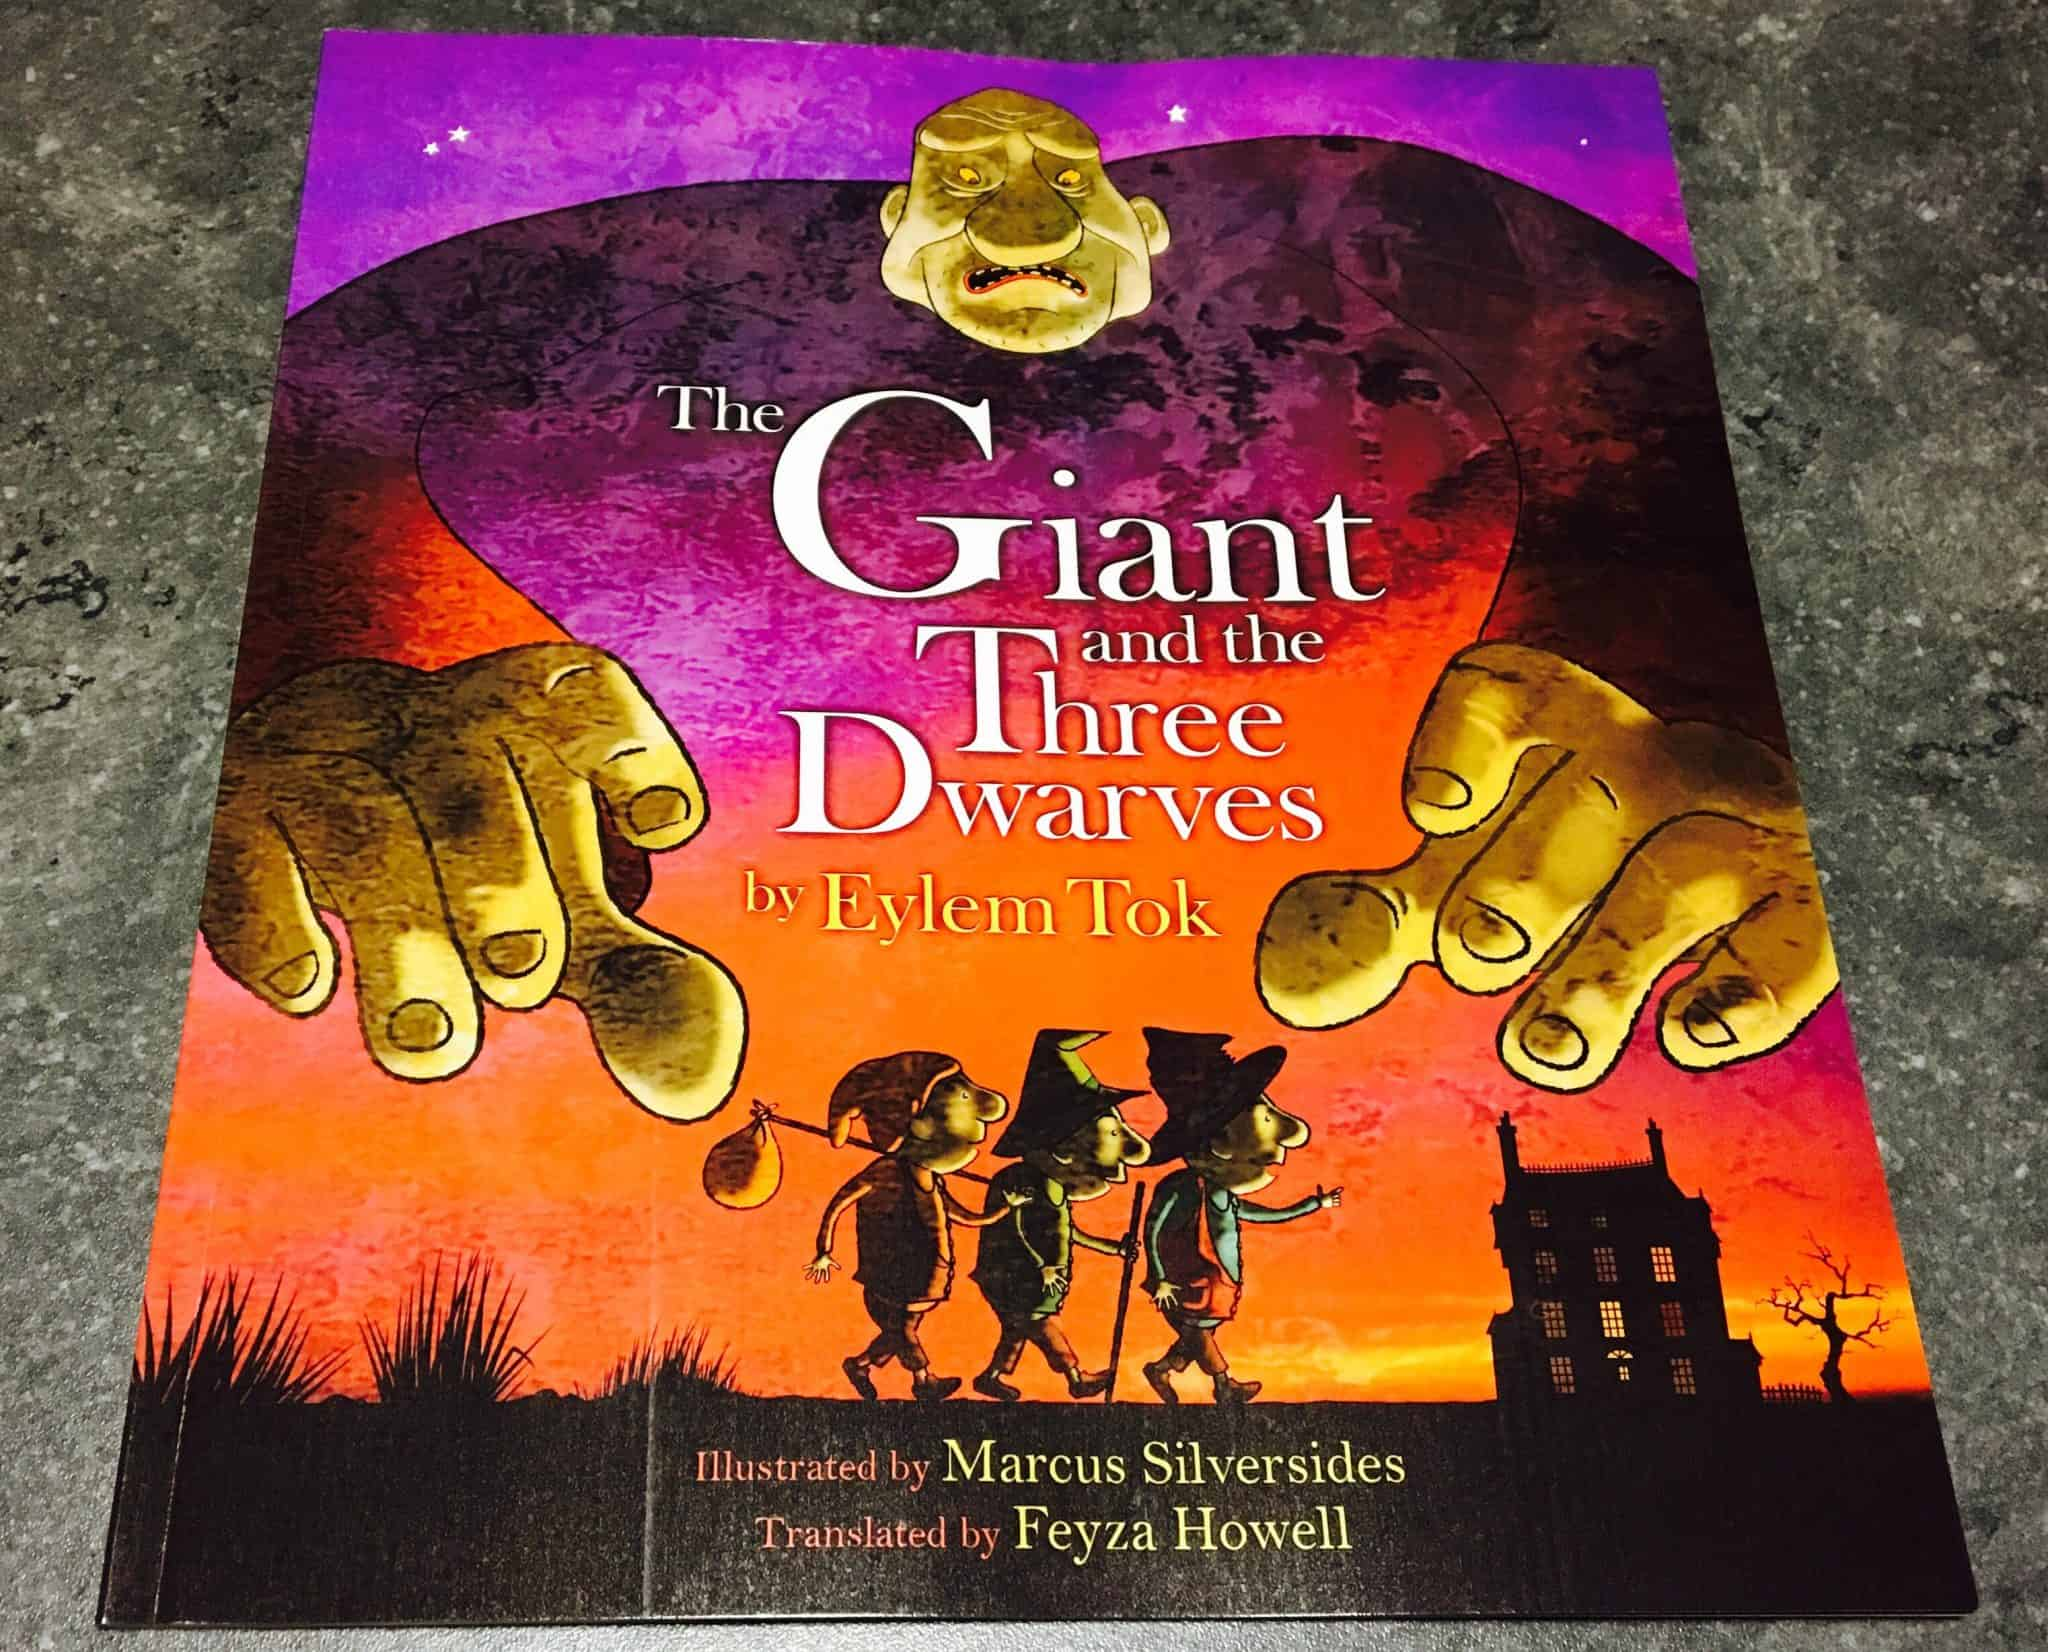 Book Review: The Giant and the Three Dwarves